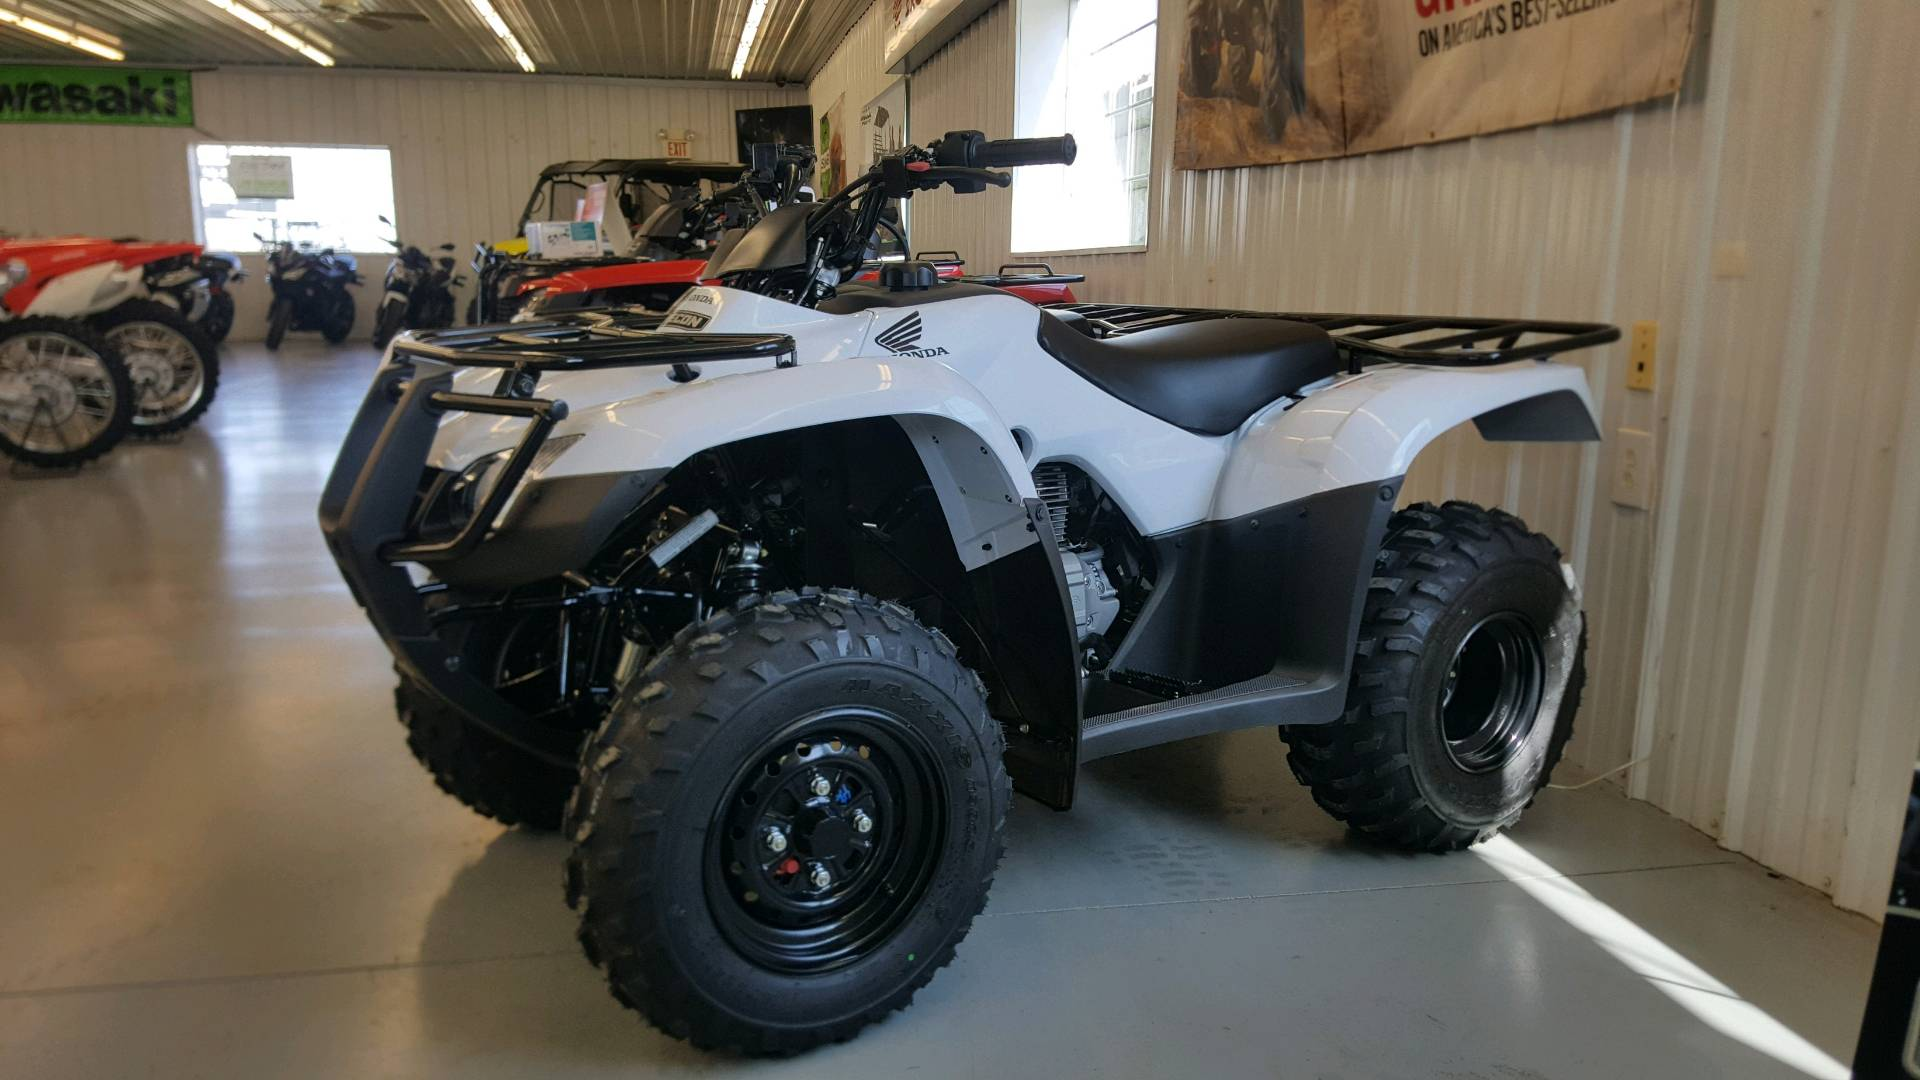 2018 Honda TRX250TMJ in Harrisburg, Illinois